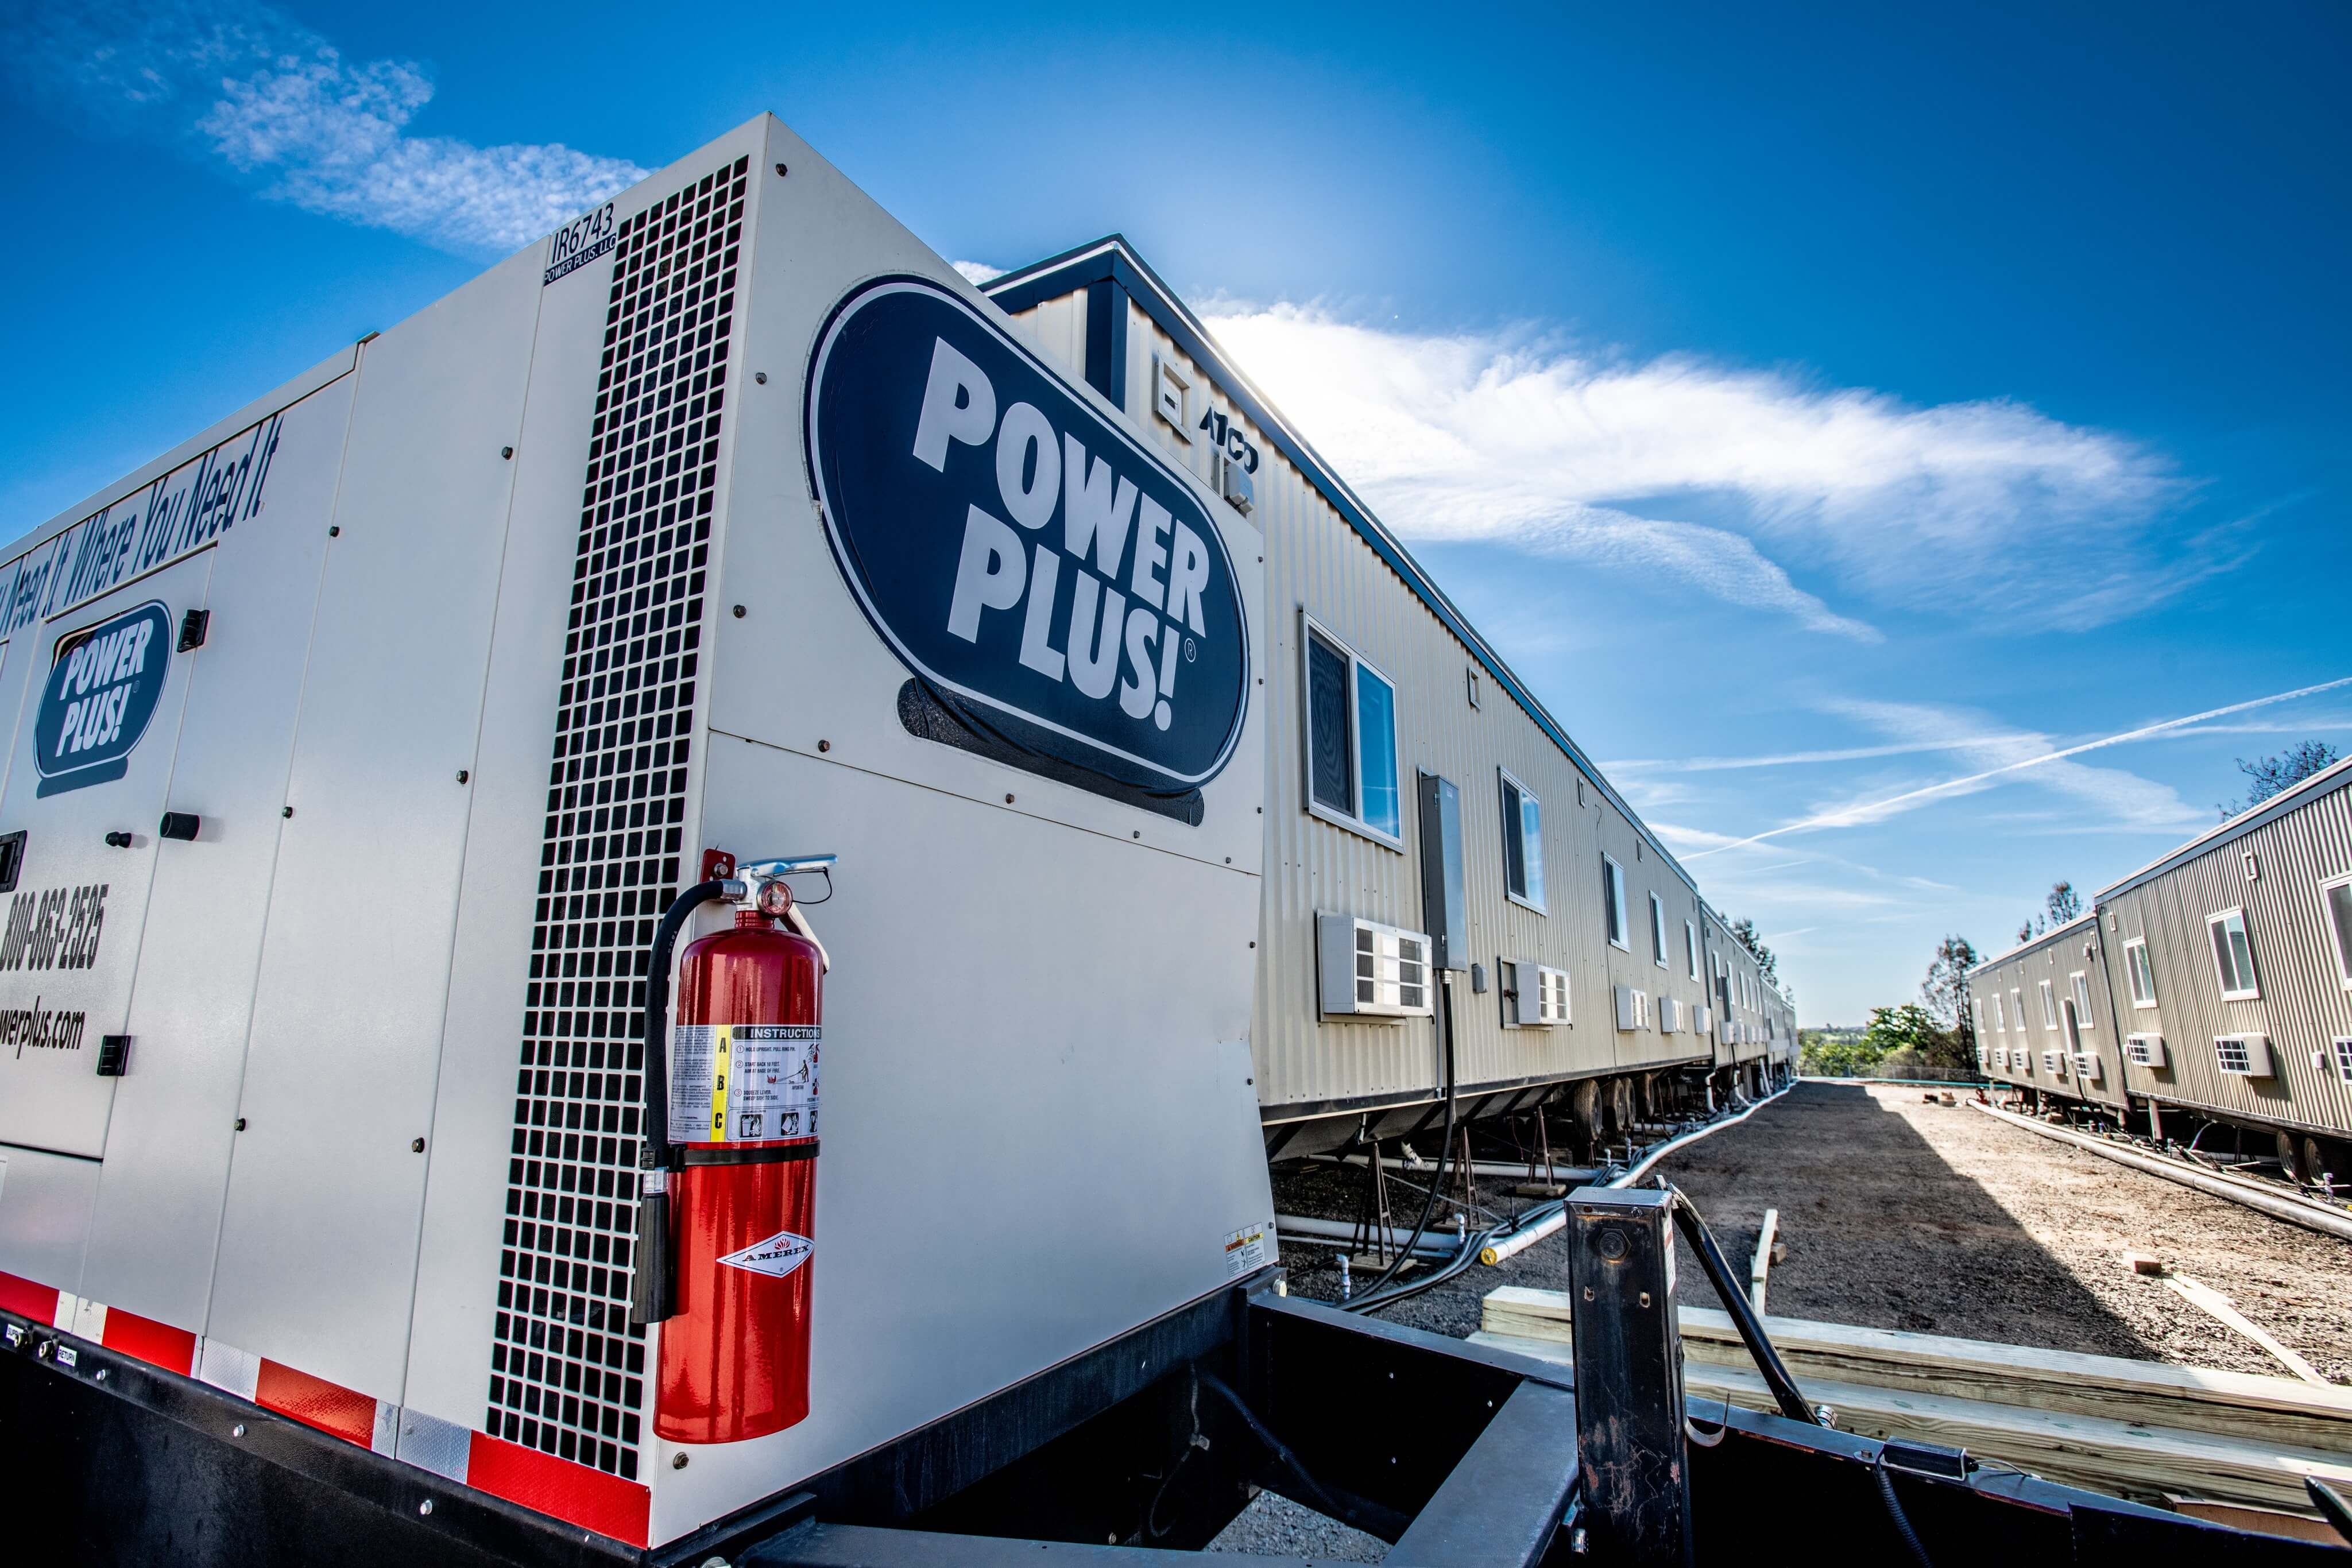 Power Plus helps with disaster relief after the Paradise California fires.